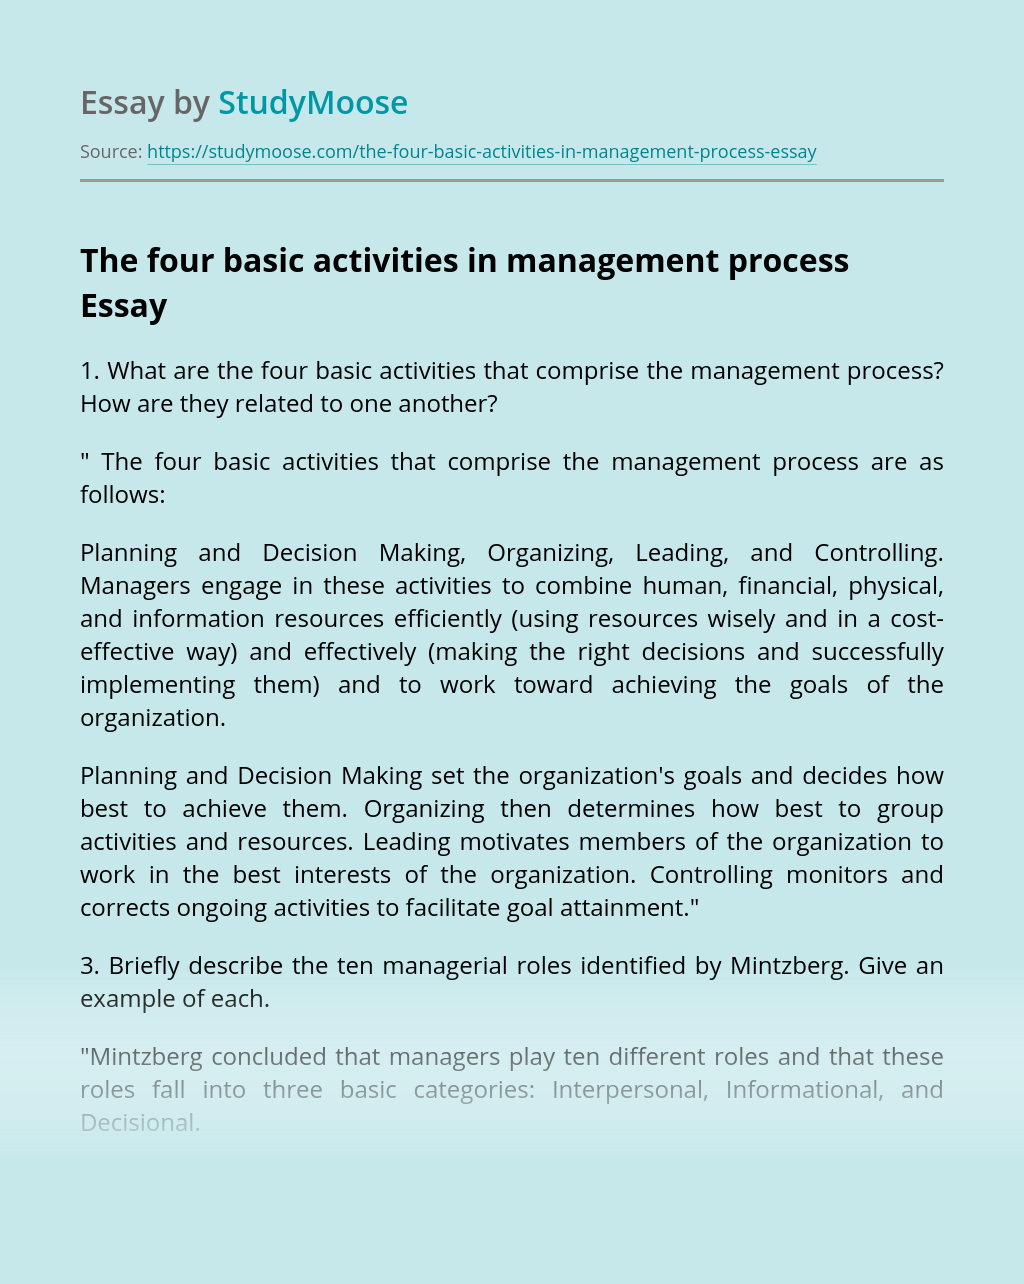 The four basic activities in management process